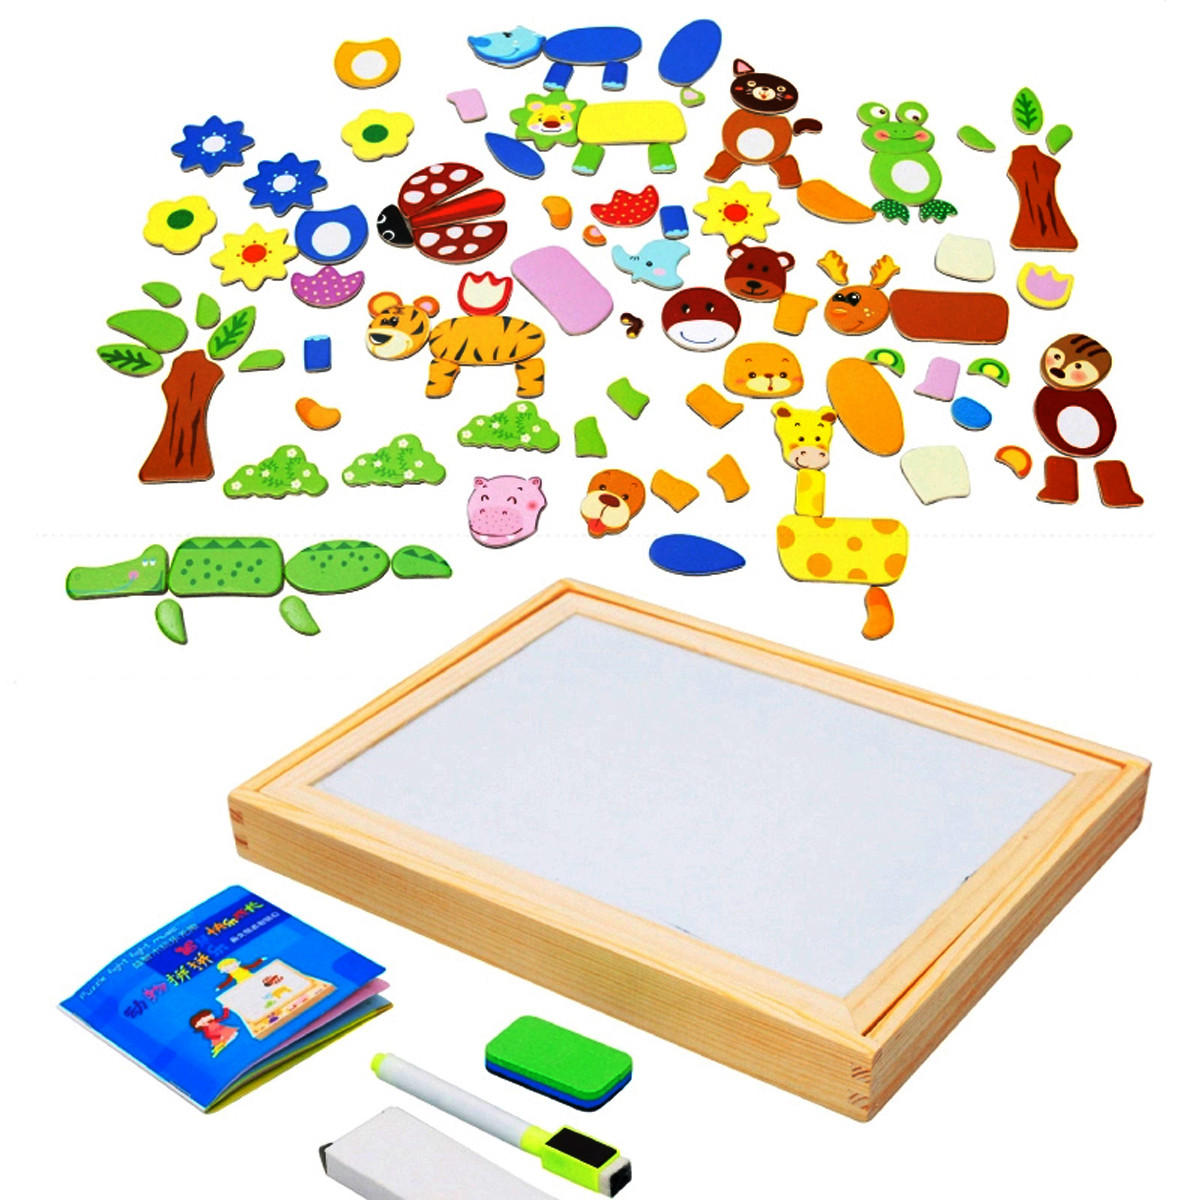 Kids Educational Learning Wooden Magnetic Drawing Board Jigsaw Puzzle Toys - 6